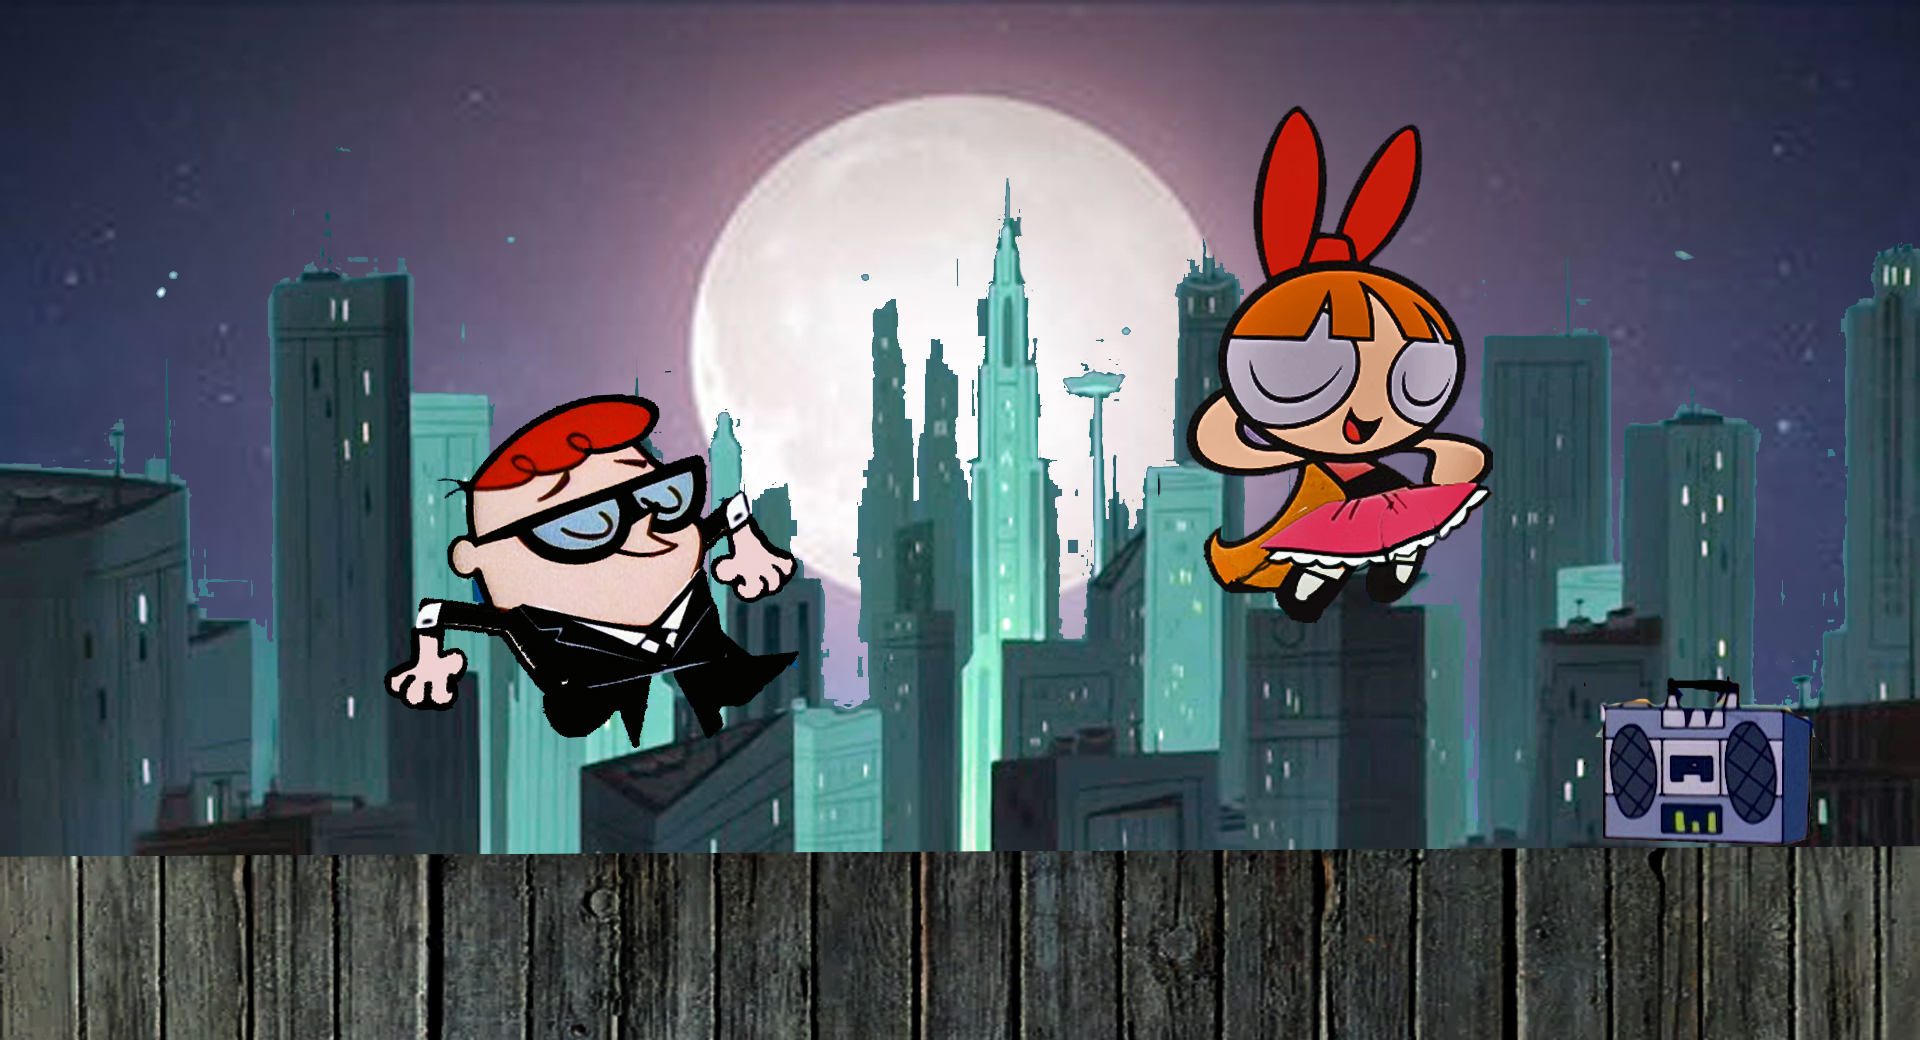 Dexter and Blossom dancing in the Moonlight Redux